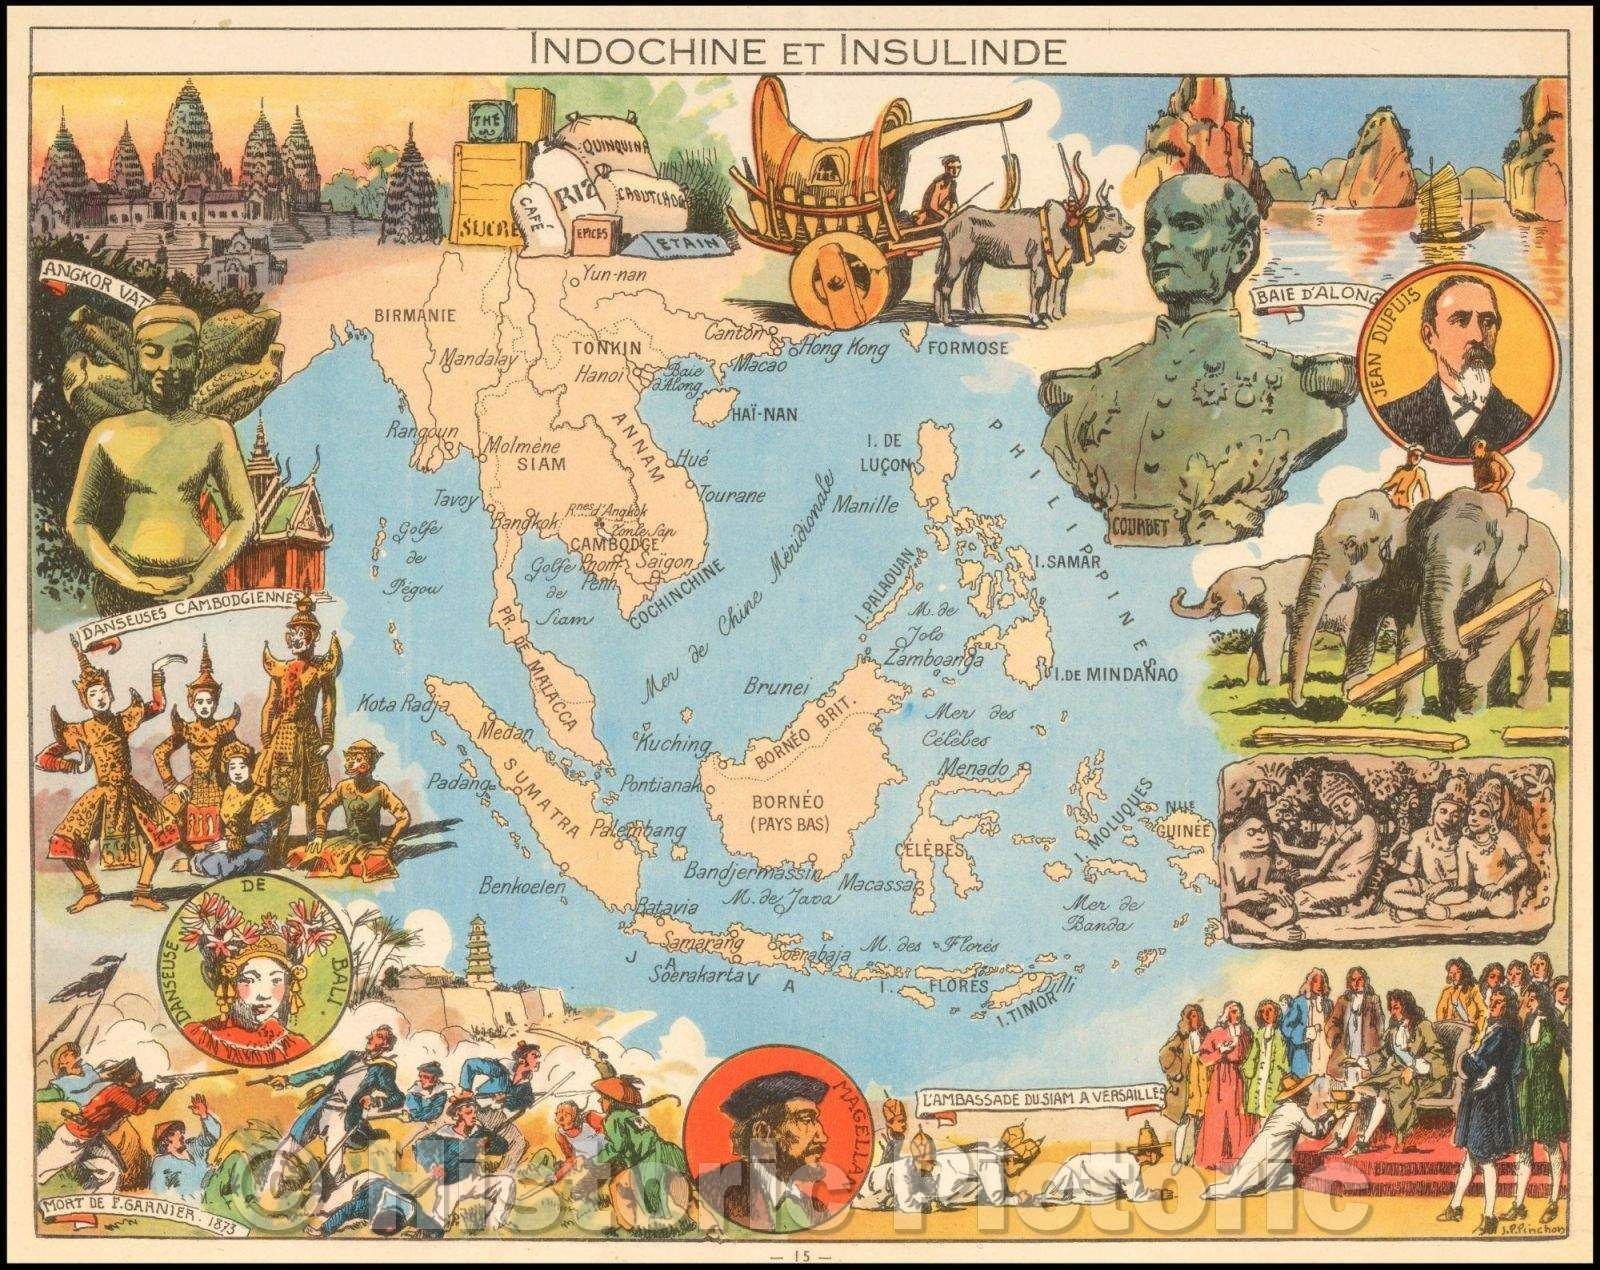 Historic Map Indochine Et Insulinde Pictorial Map Of Southeast Asia And The Philippines 1950 Joseph Porphyre Pinchon Vintage Wall Art Asia Map Pictorial Maps Southeast Asia